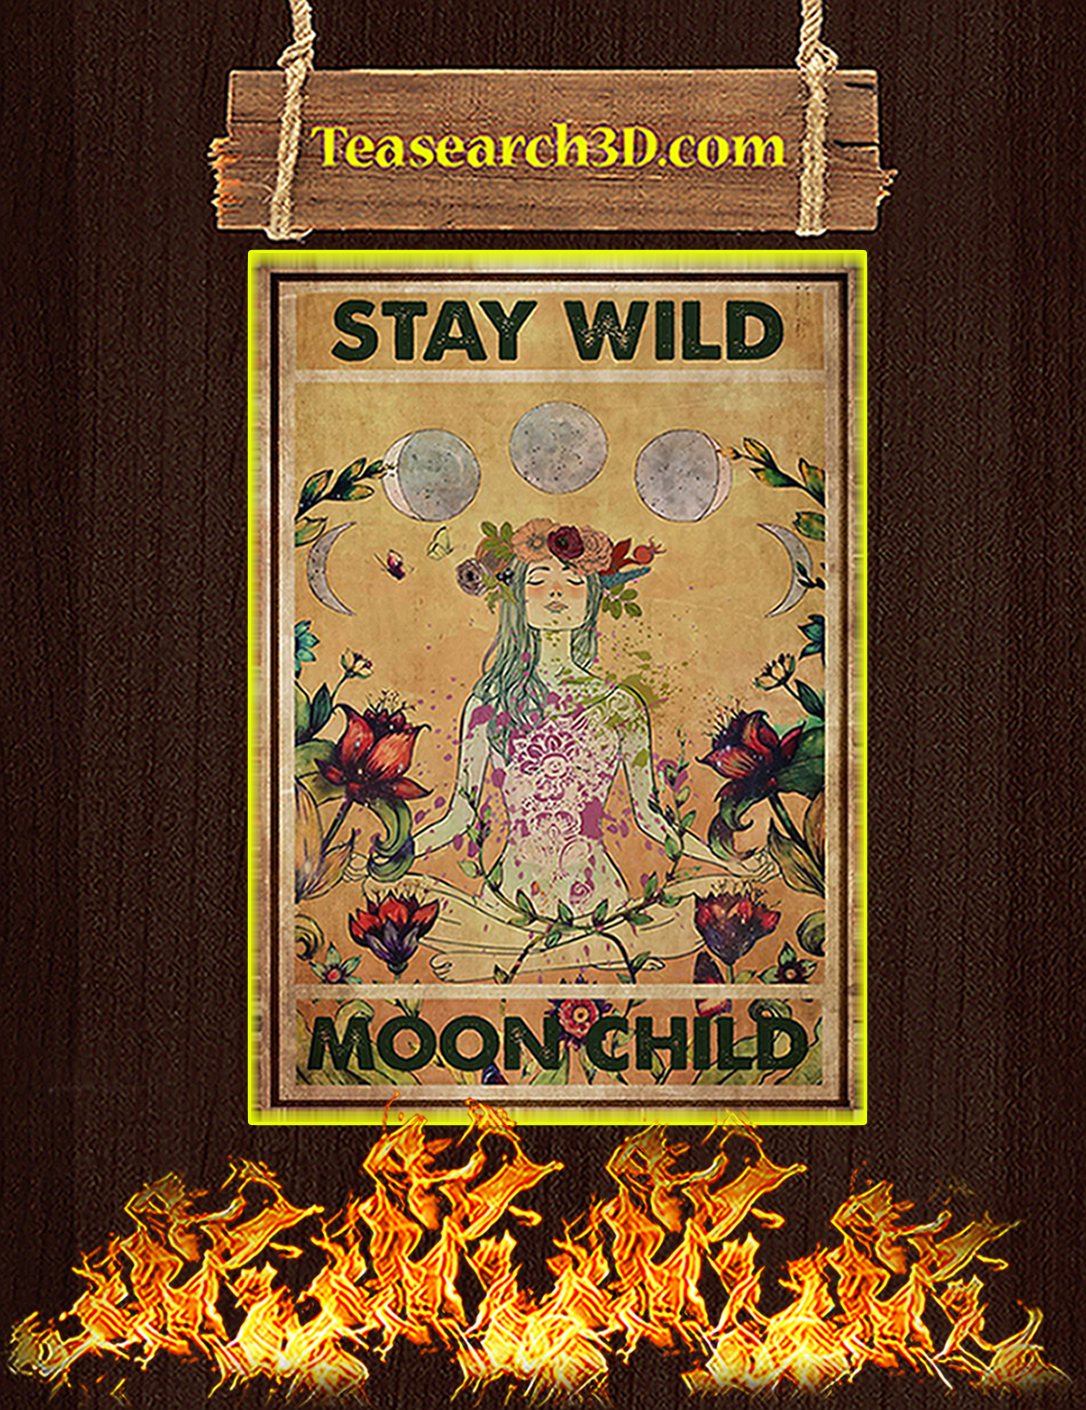 Hippie yoga stay wild moon child poster A2